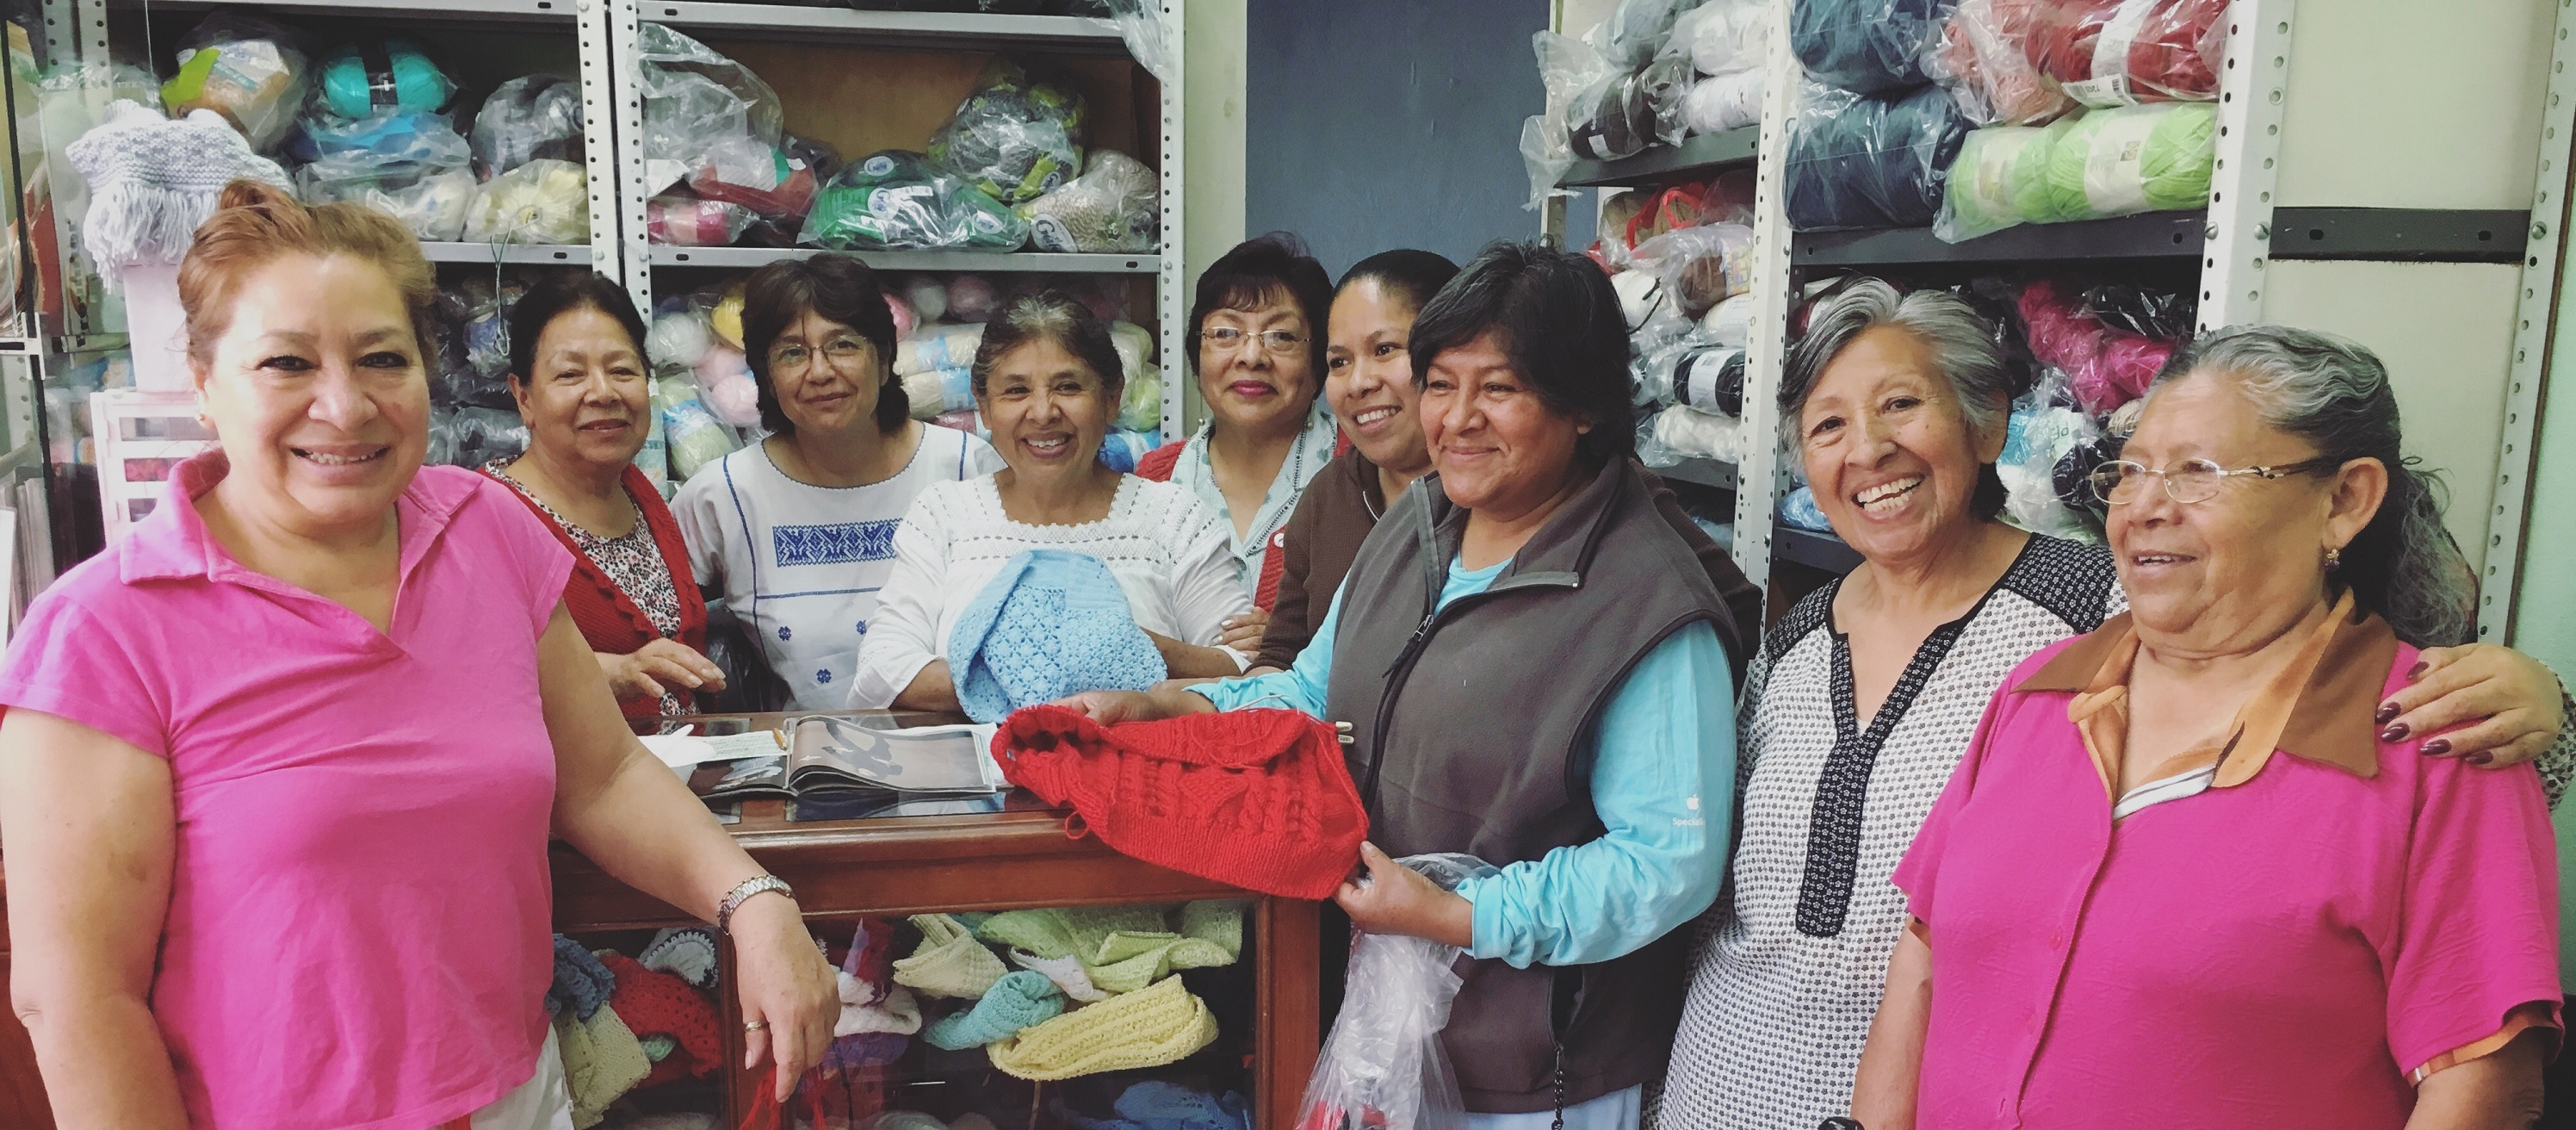 These older women in Mexico City love their city, but it could cater their needs better (c) Sion Jones/HelpAge International